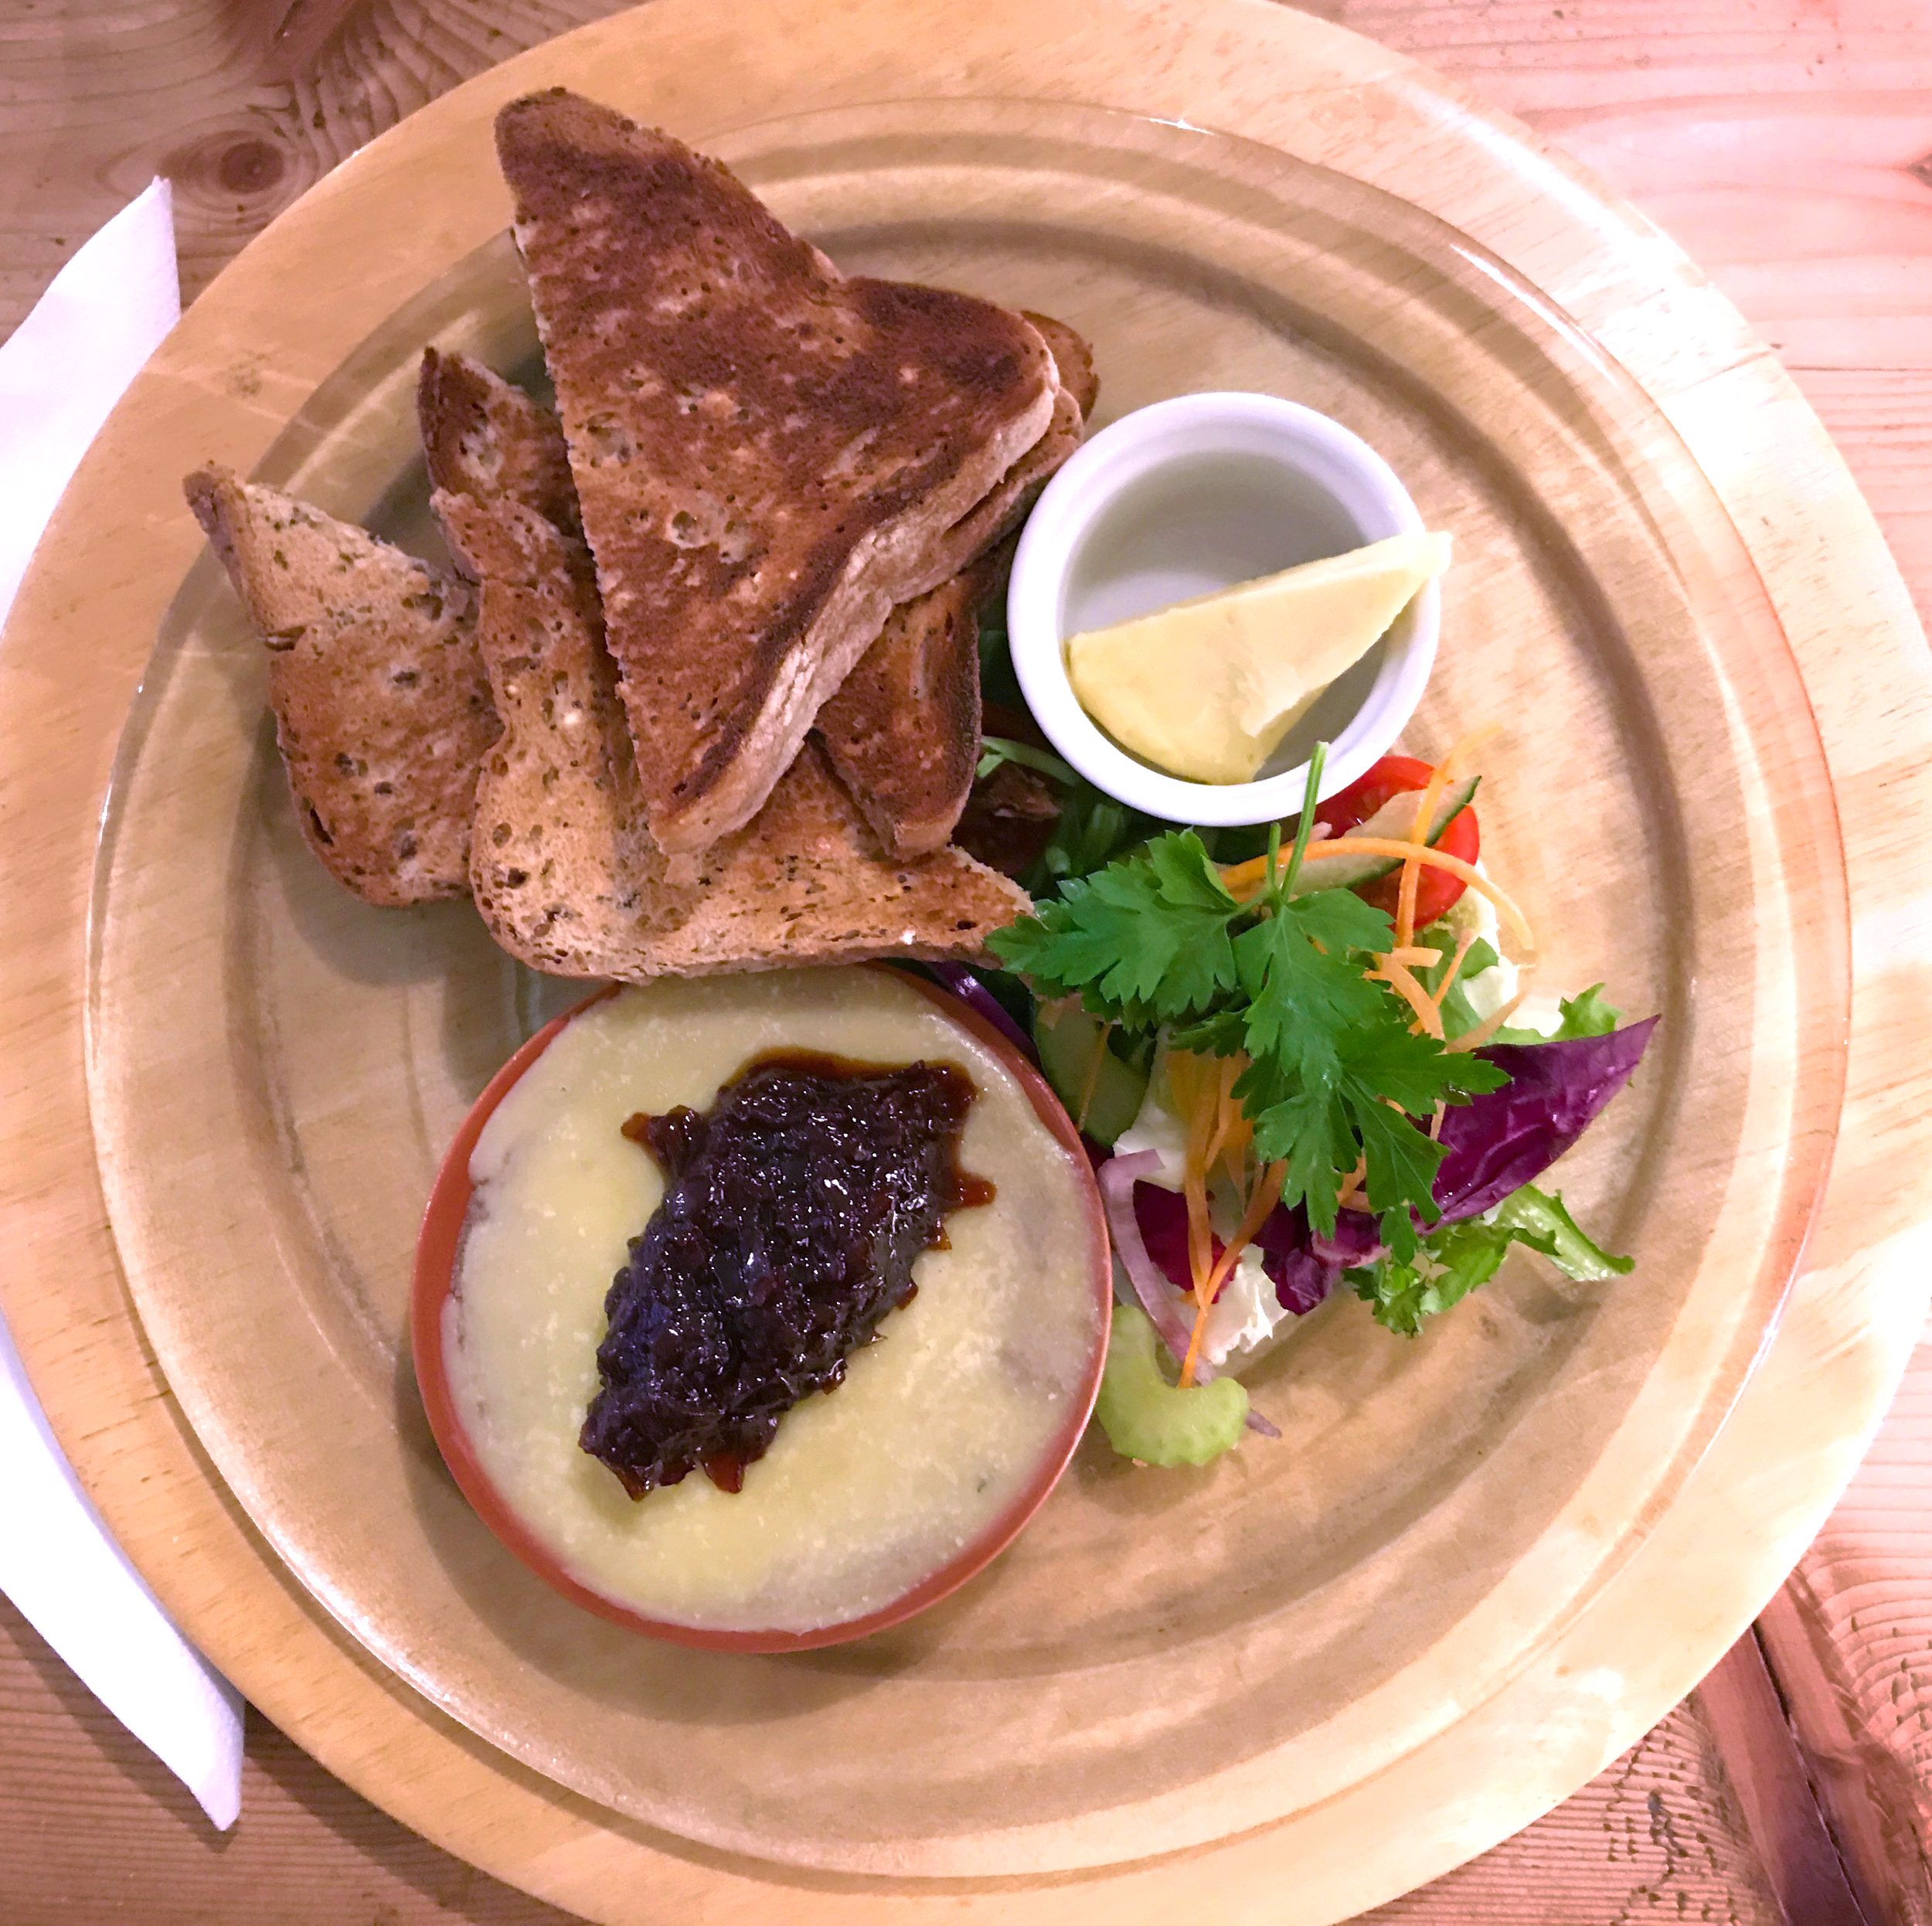 Chicken liver and bacon pâté with gluten-free toast and salad from Amelies Cafe in Conwy, Wales. Yes, that's jam on top and yes it was delicious!